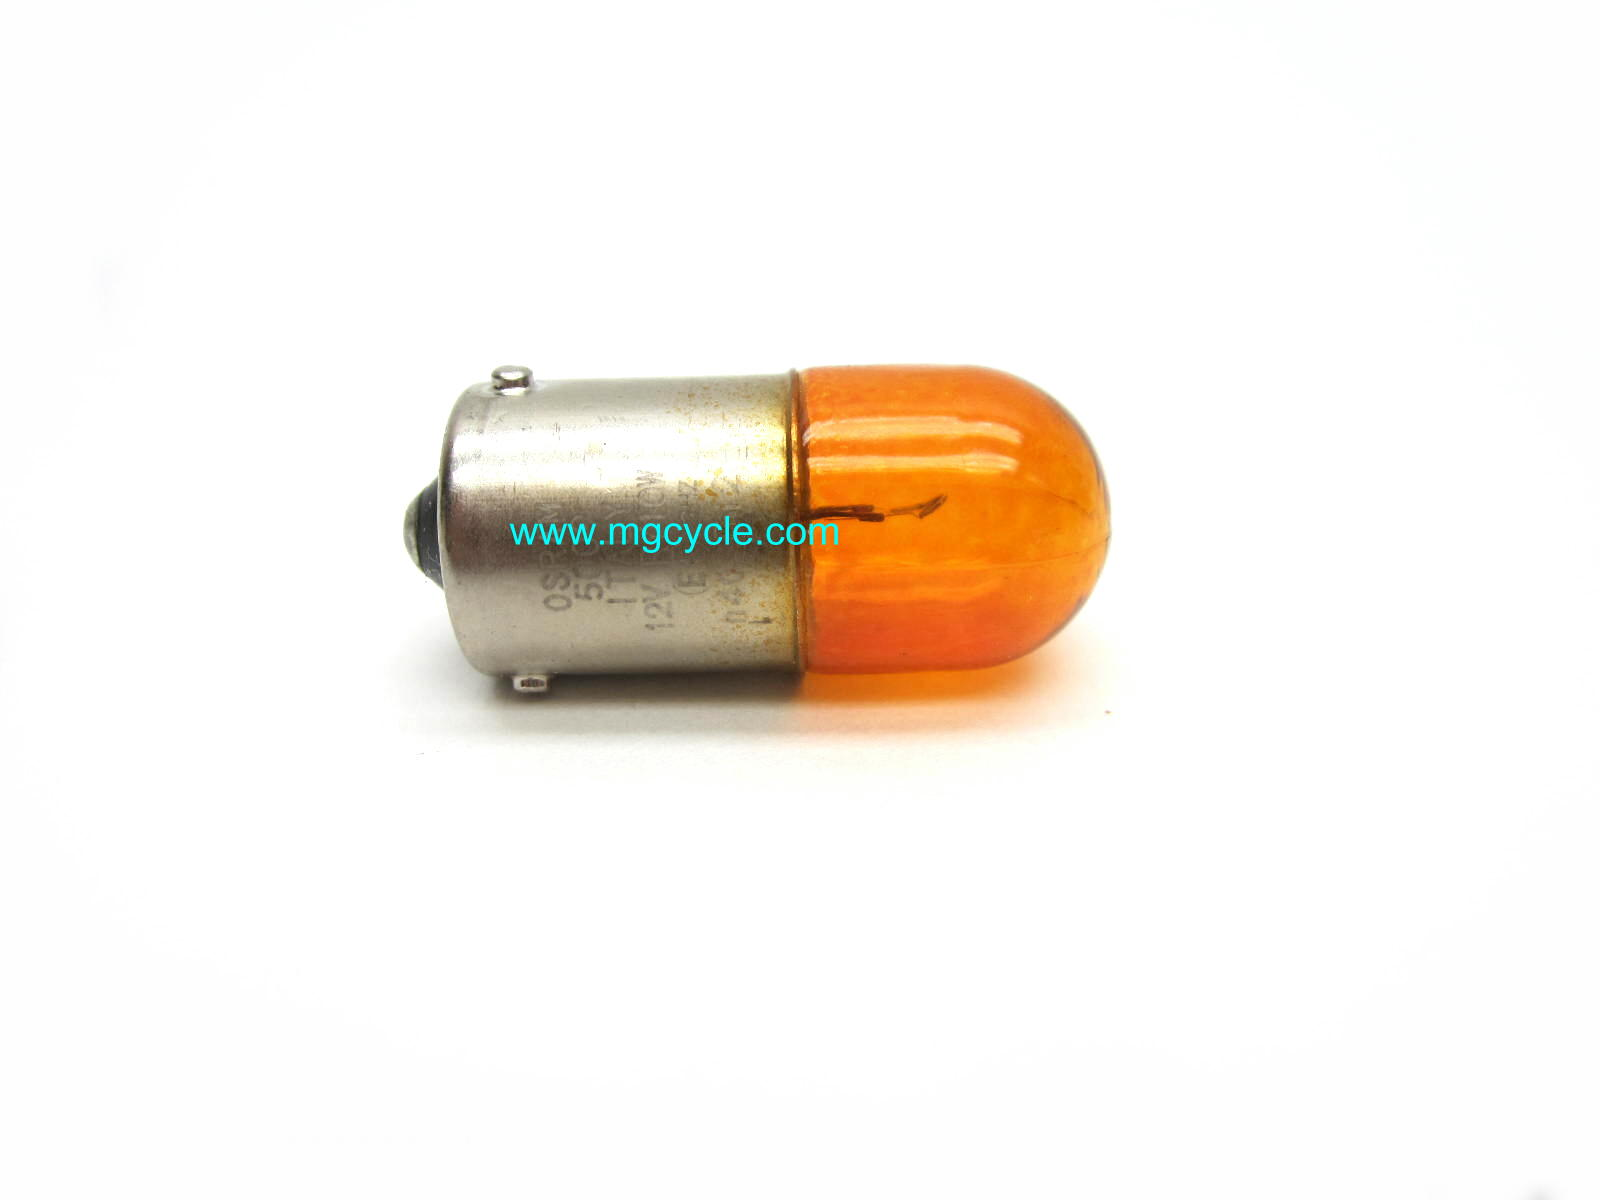 orange turn signal bulb, 10W, many models since 2003